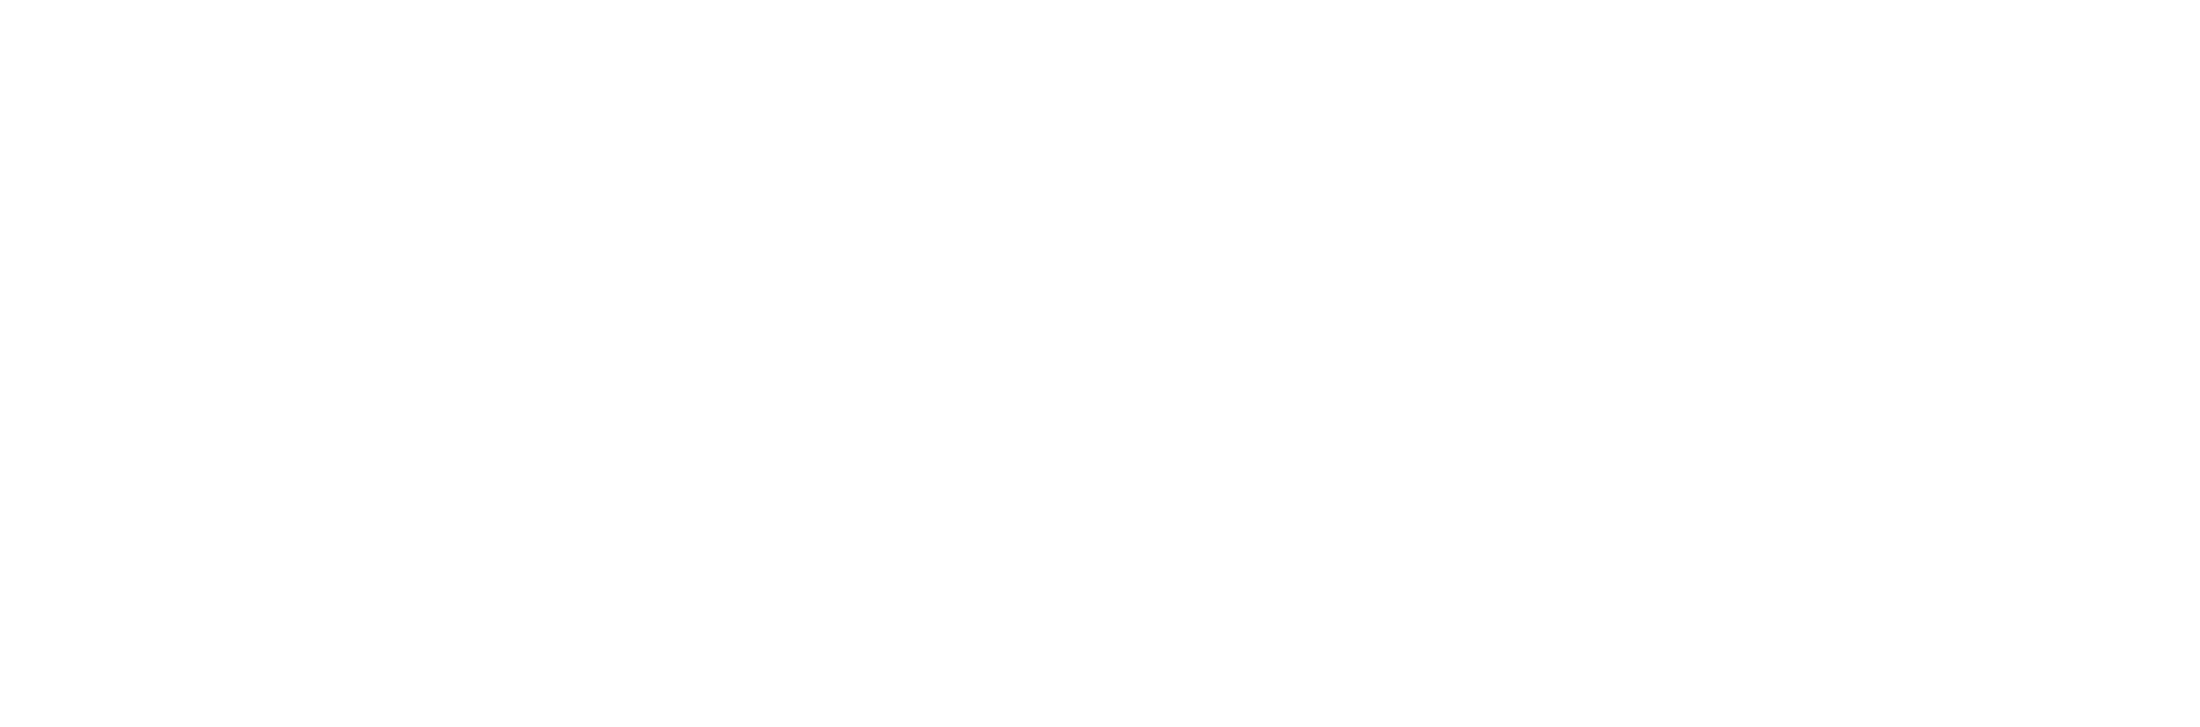 1919 Lanzhou Beef Noodle